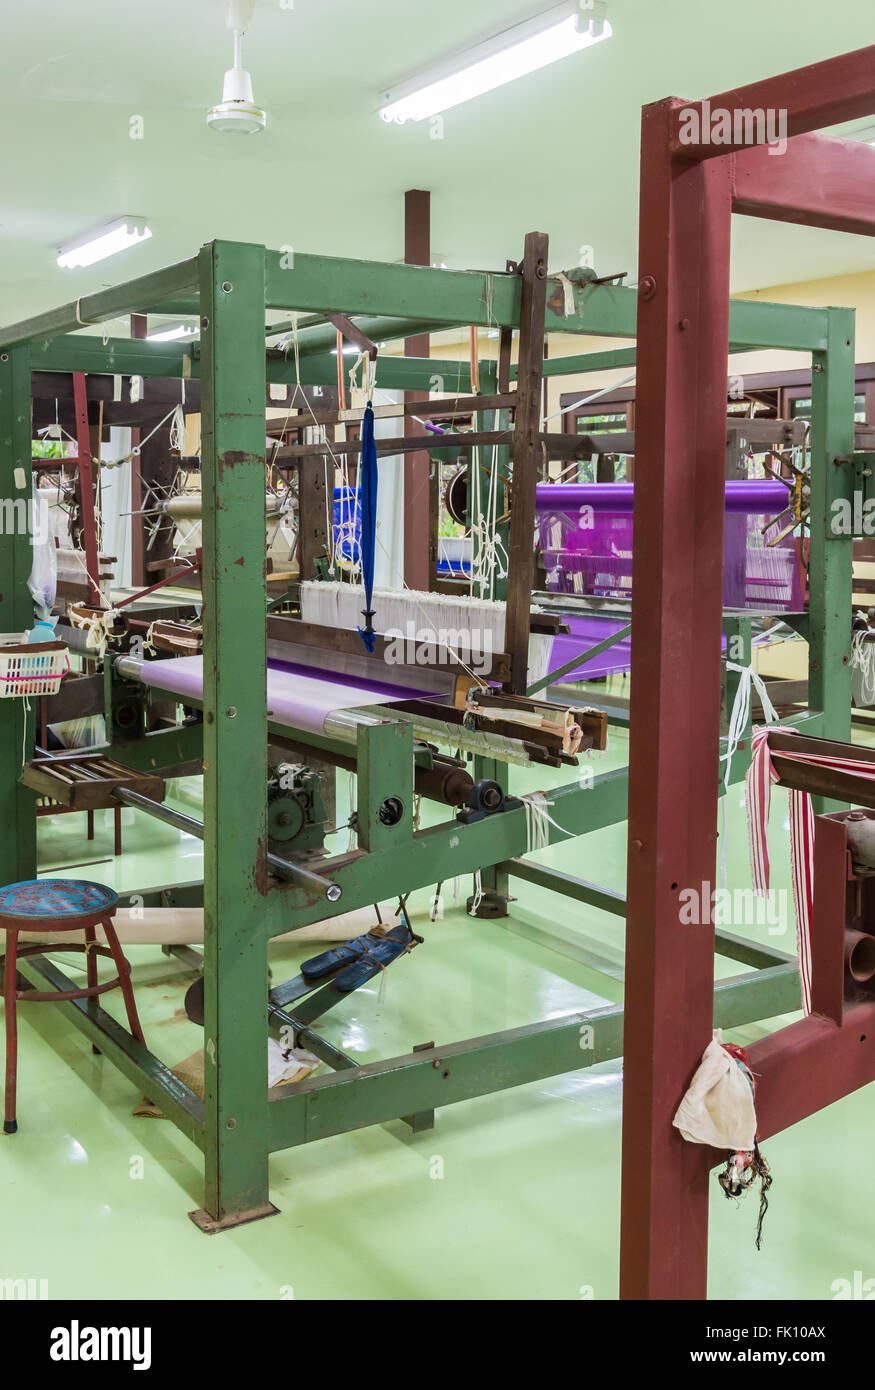 Old loom machine in the silk weaving factory. - Stock Image